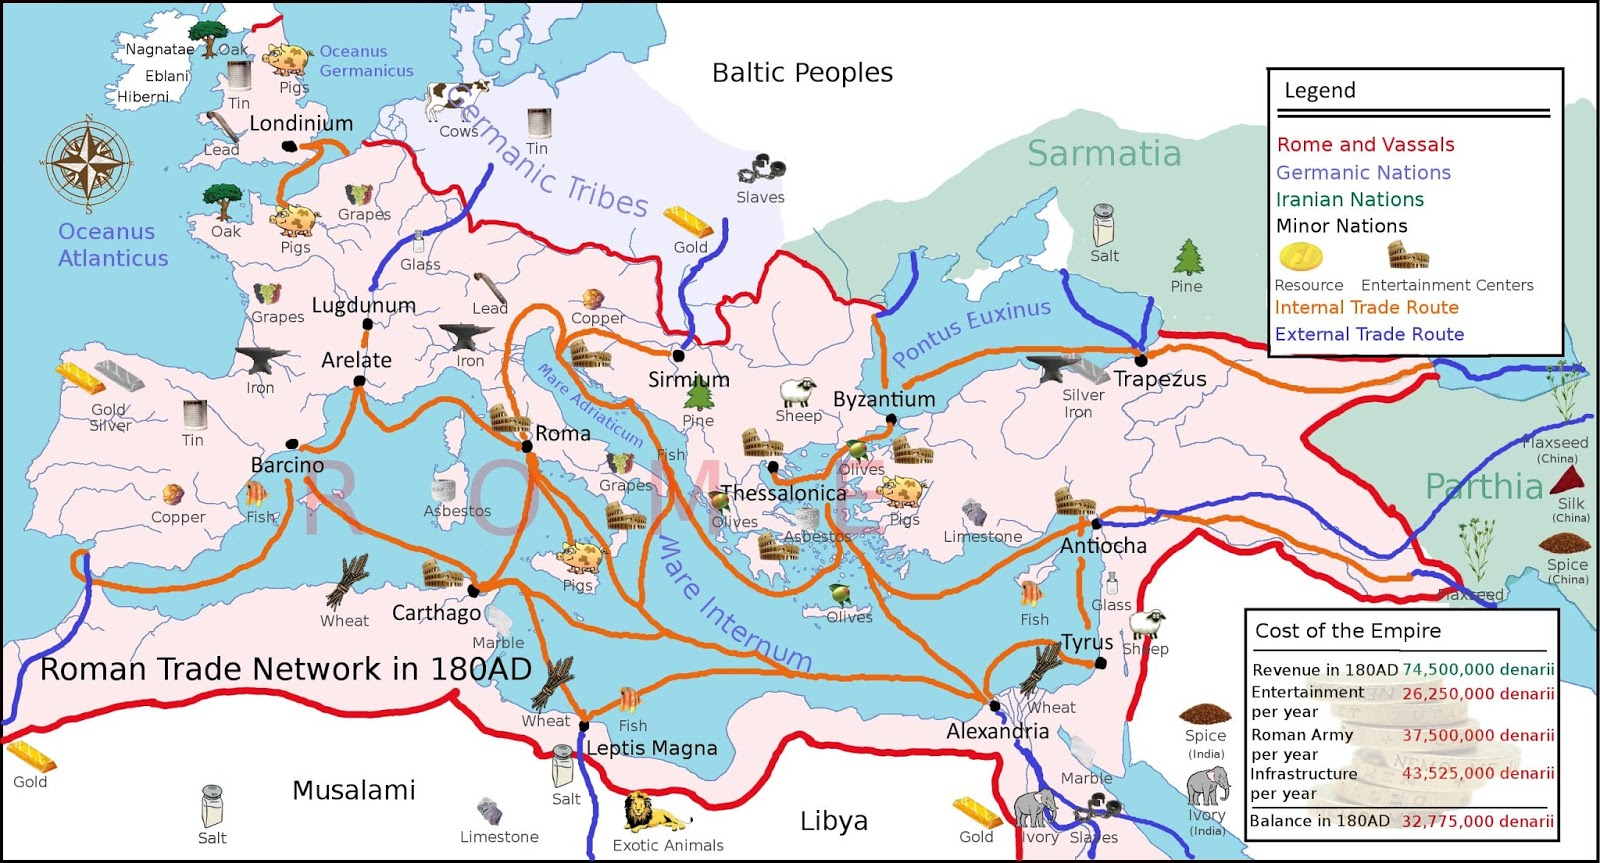 Principal Roman trade routes and resources in 180 AD